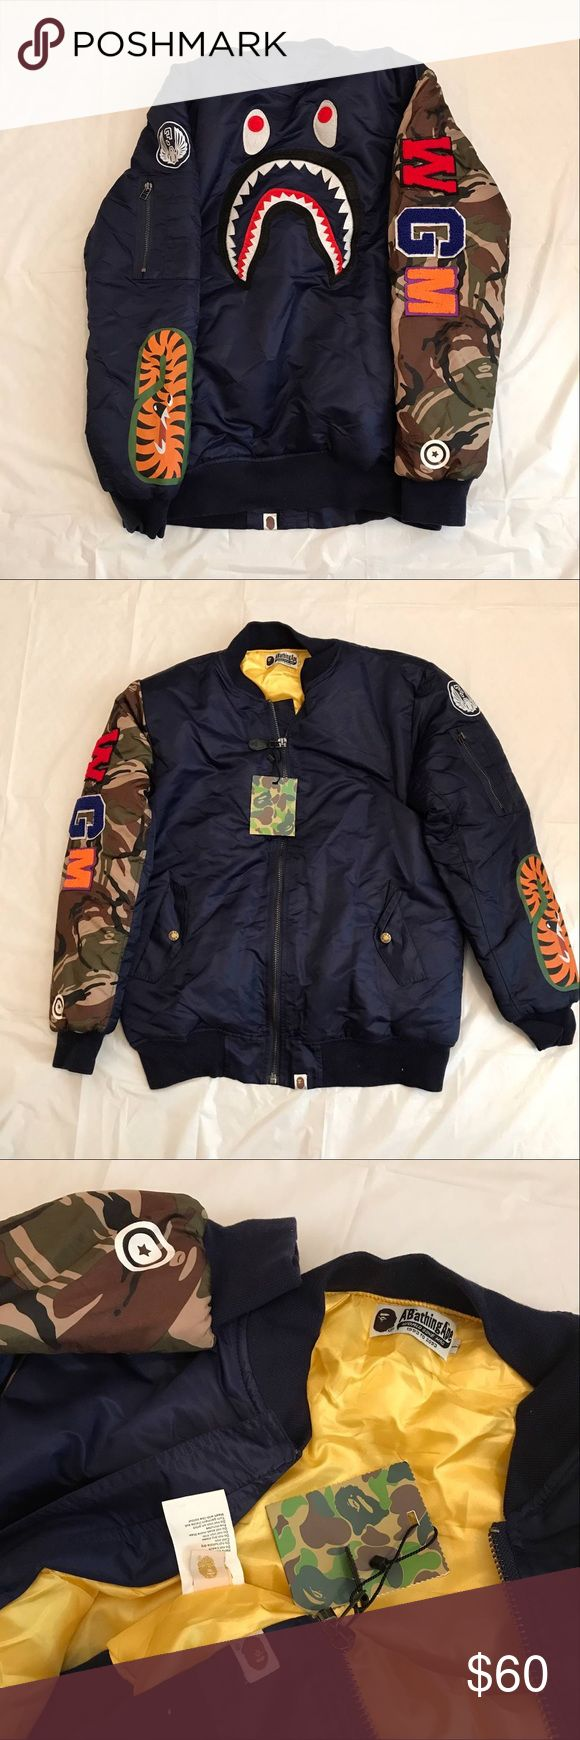 Bape jacket blue men size Brand new come with tag and bag. Size available:M-L EYES:Fit little smaller,recommend order one size bigger. Ship by usps the same busness day if u order before 12:00pm. Jackets & Coats Lightweight & Shirt Jackets